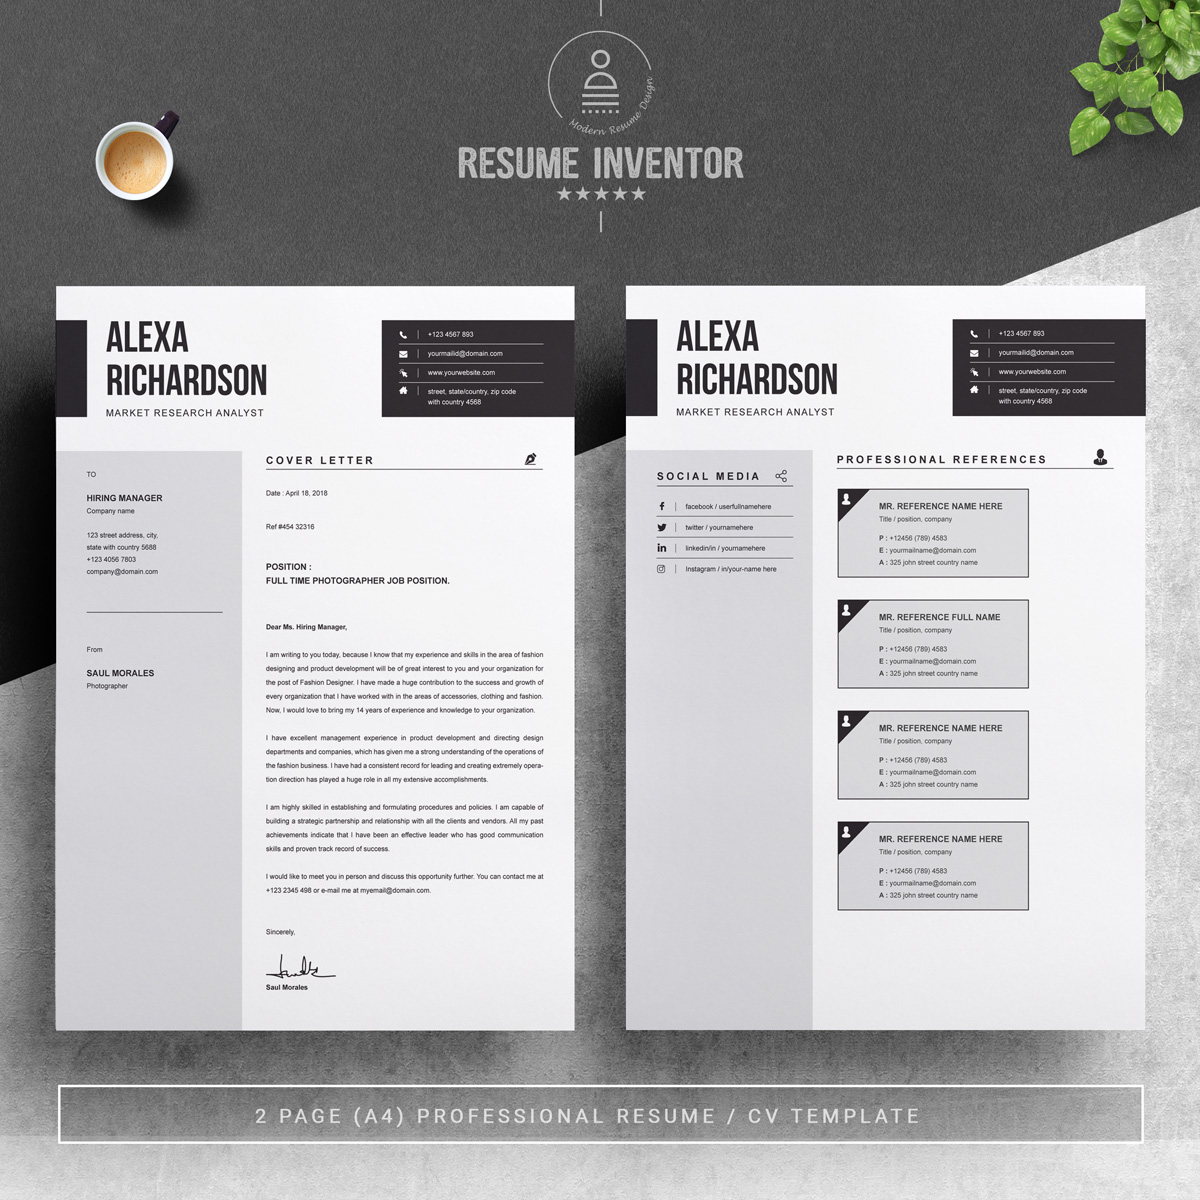 https://s3u.tmimgcdn.com/1860567-1561183259433_03_2-Pages-Free-Resume-Design-Template.jpg